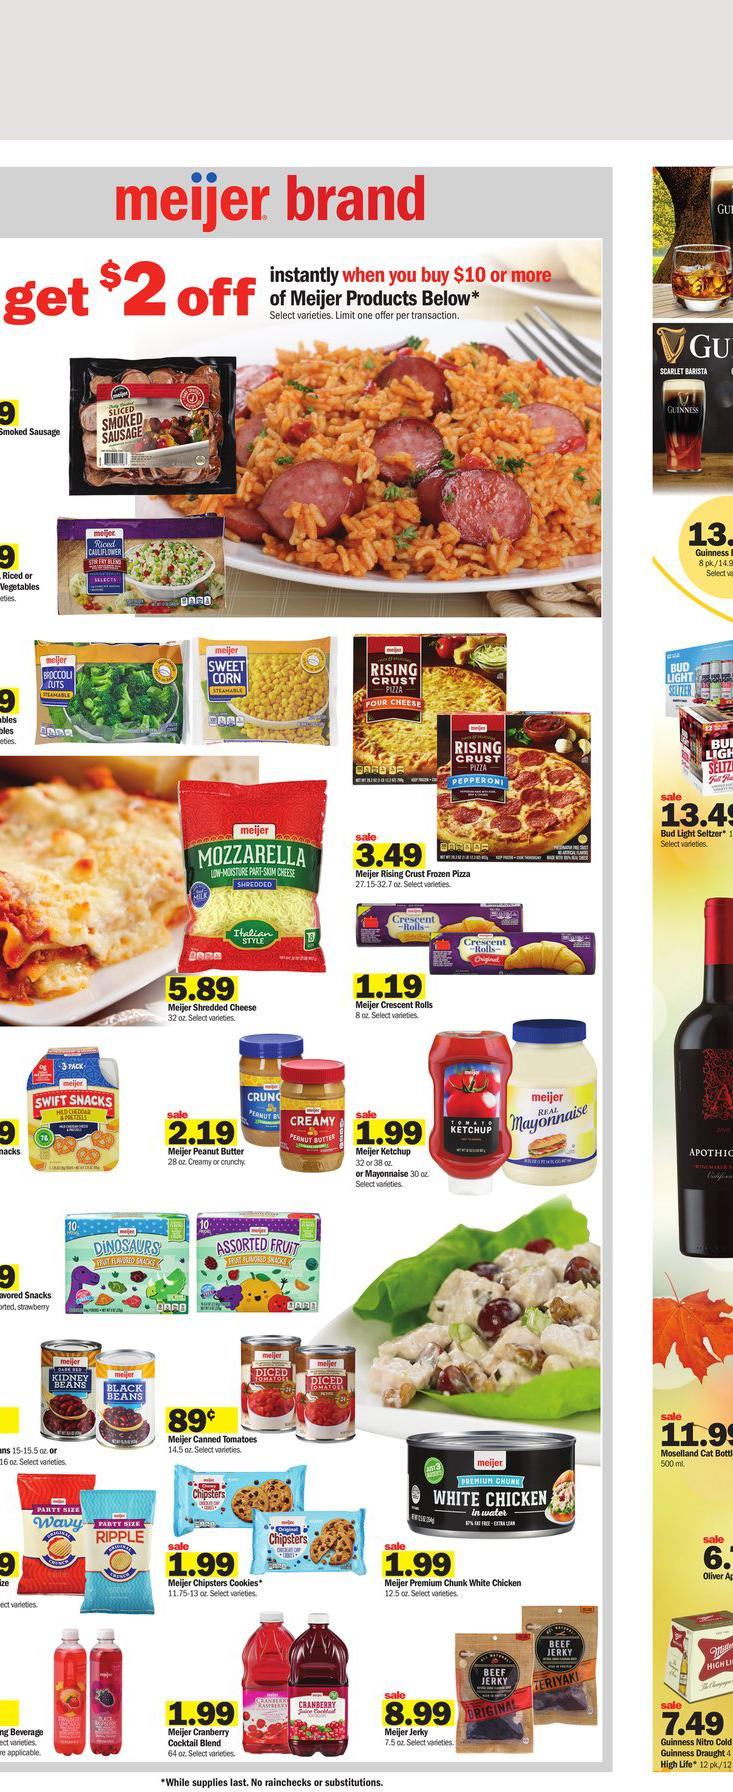 10.10.2021 Meijer ad 9. page